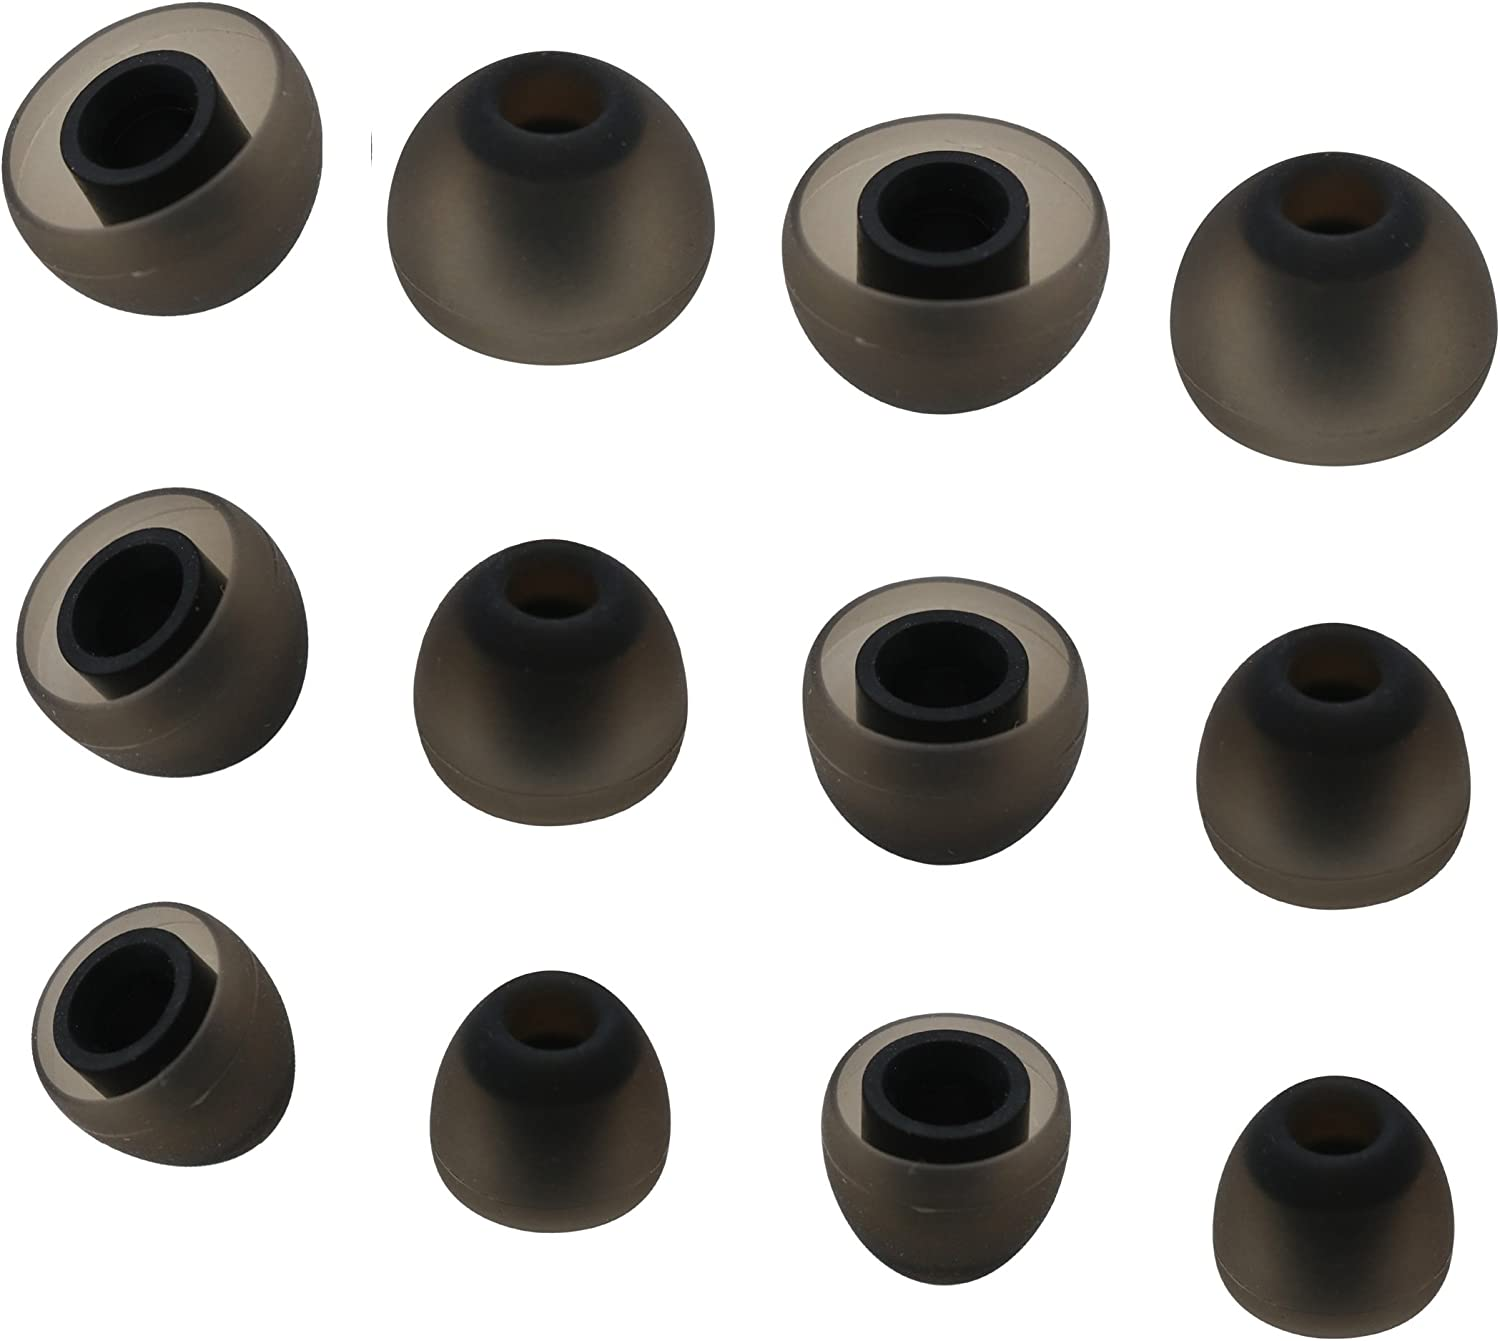 Noise Isolation Comfort Silicone Tips in Ear Canal 6 Pairs M//Black4.5mm Medium Size Included Rayker Replacement Ear Tips for Jaybird Bluebuds X X2 X3 Ear Adapter Jaybird X3 Tips